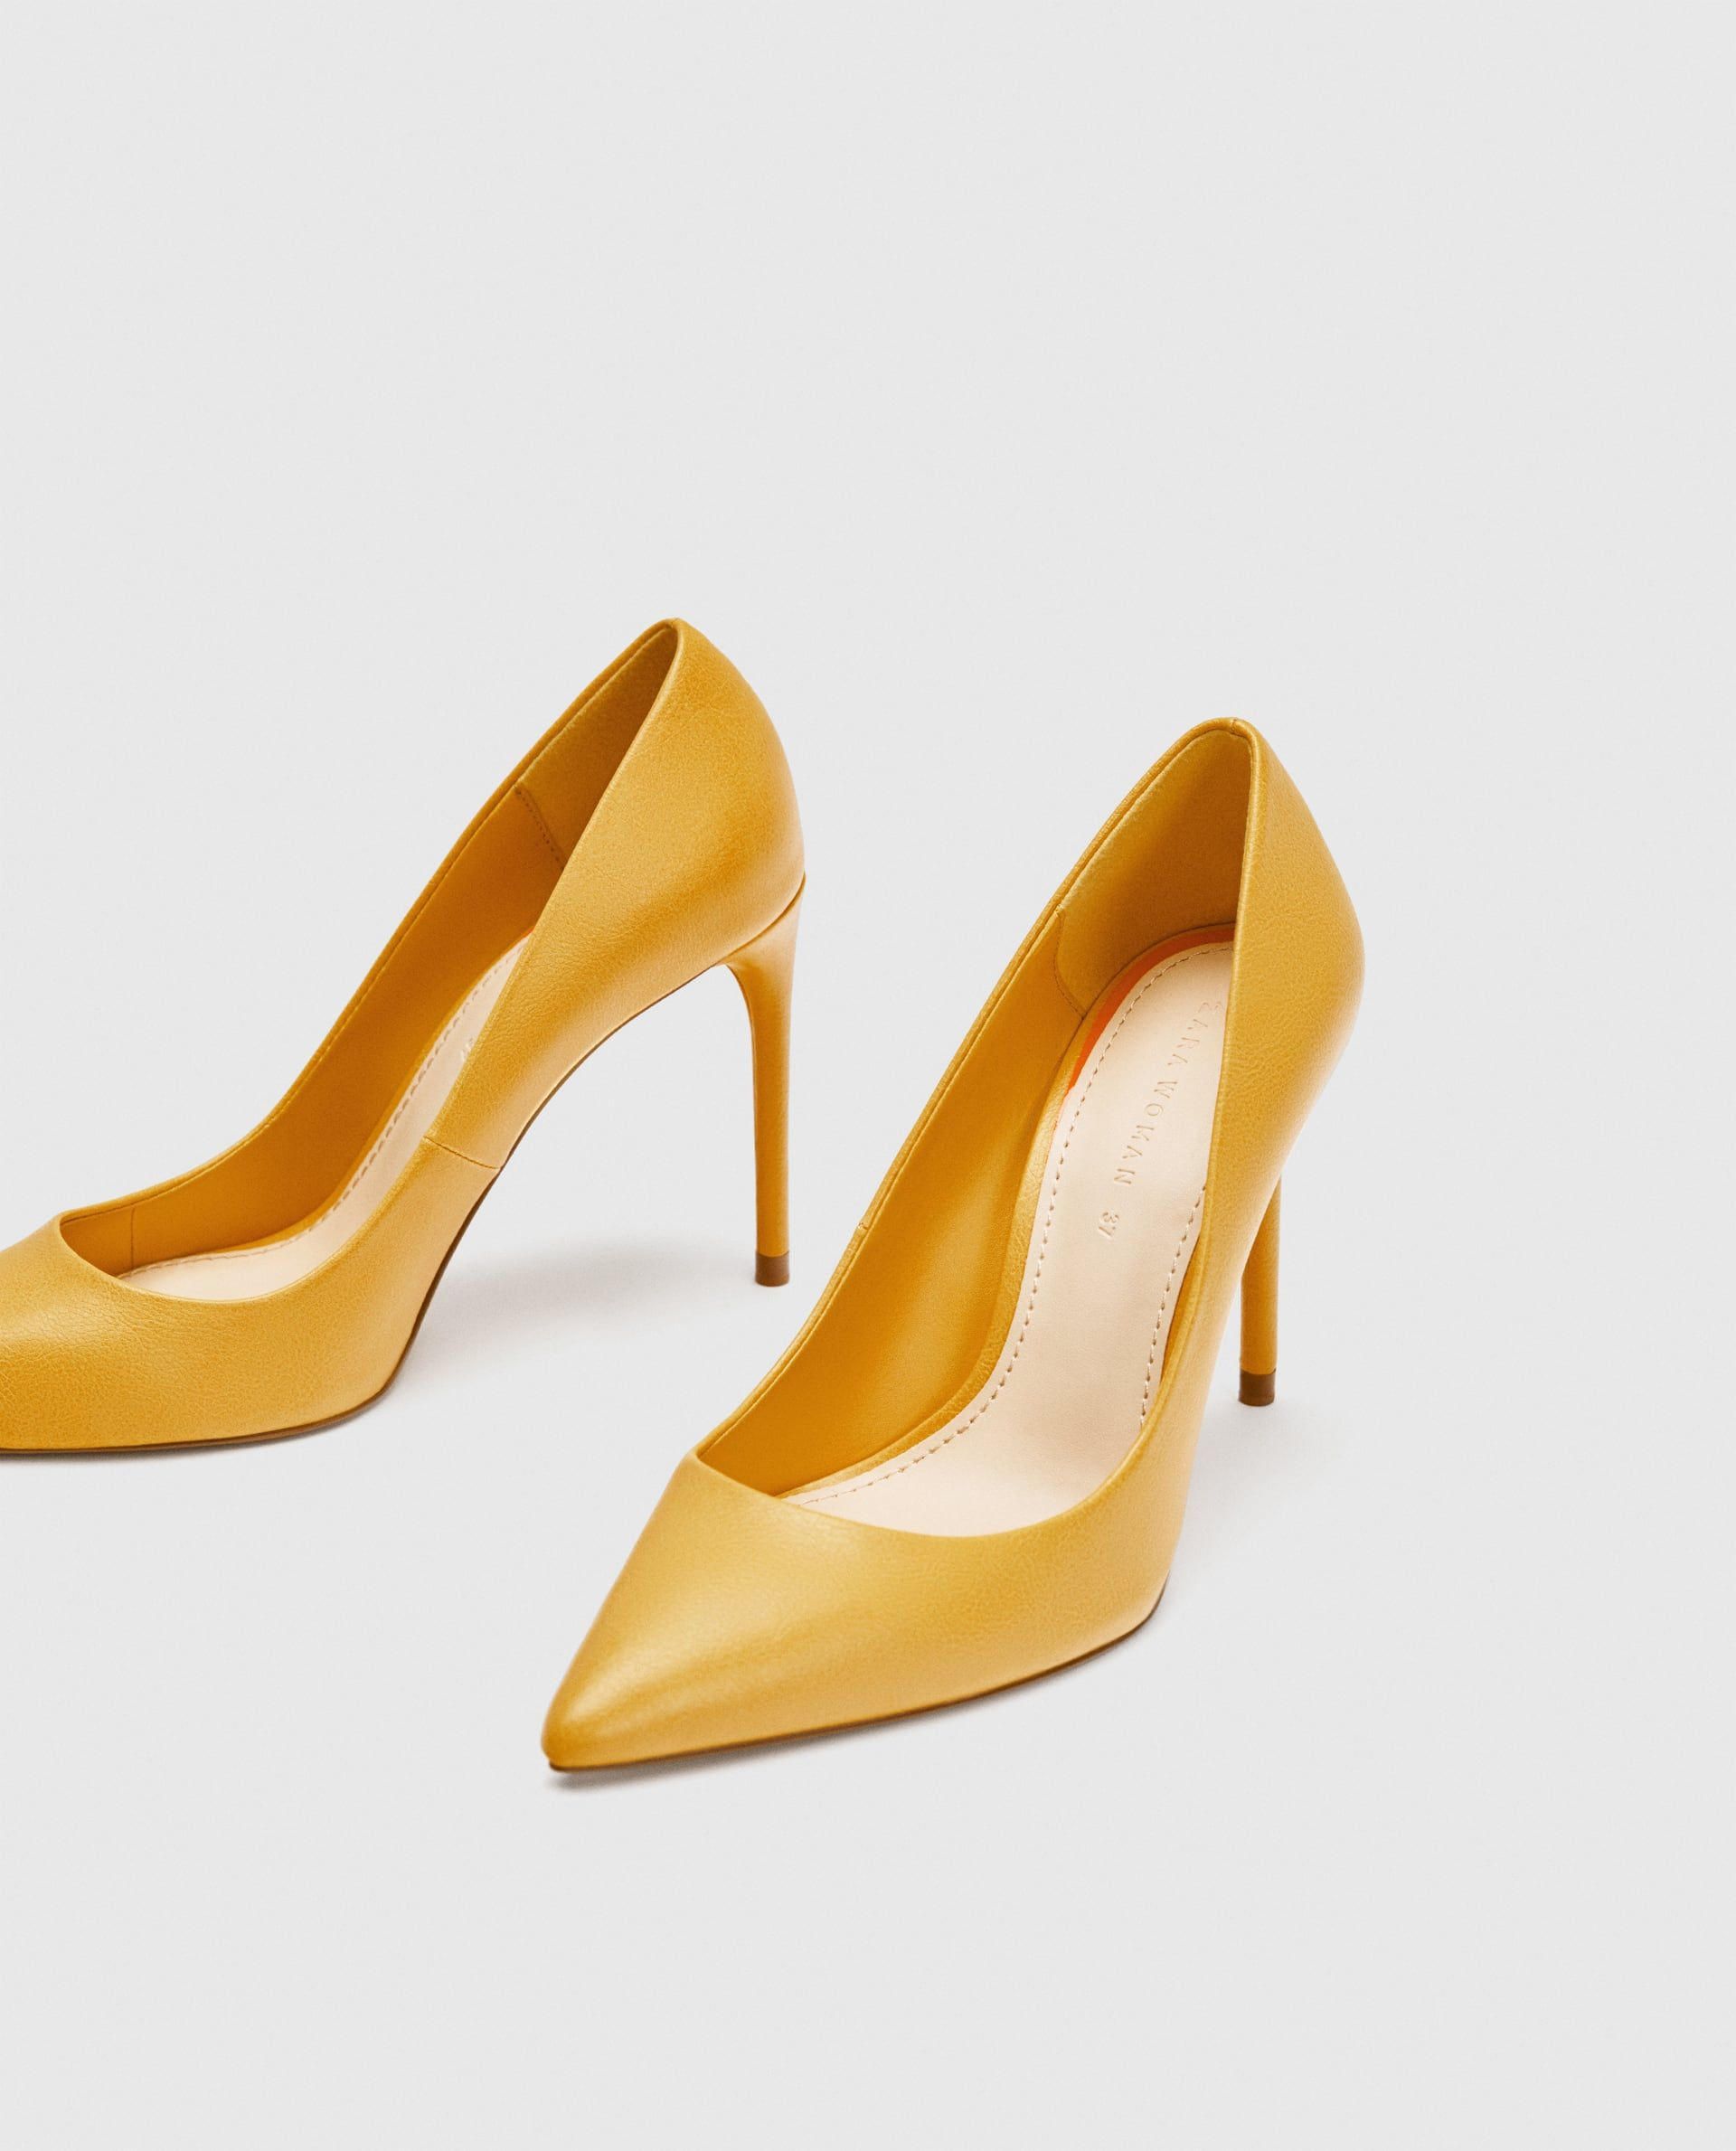 93f48bdf54e Image 5 of YELLOW HIGH HEEL COURT SHOES from Zara